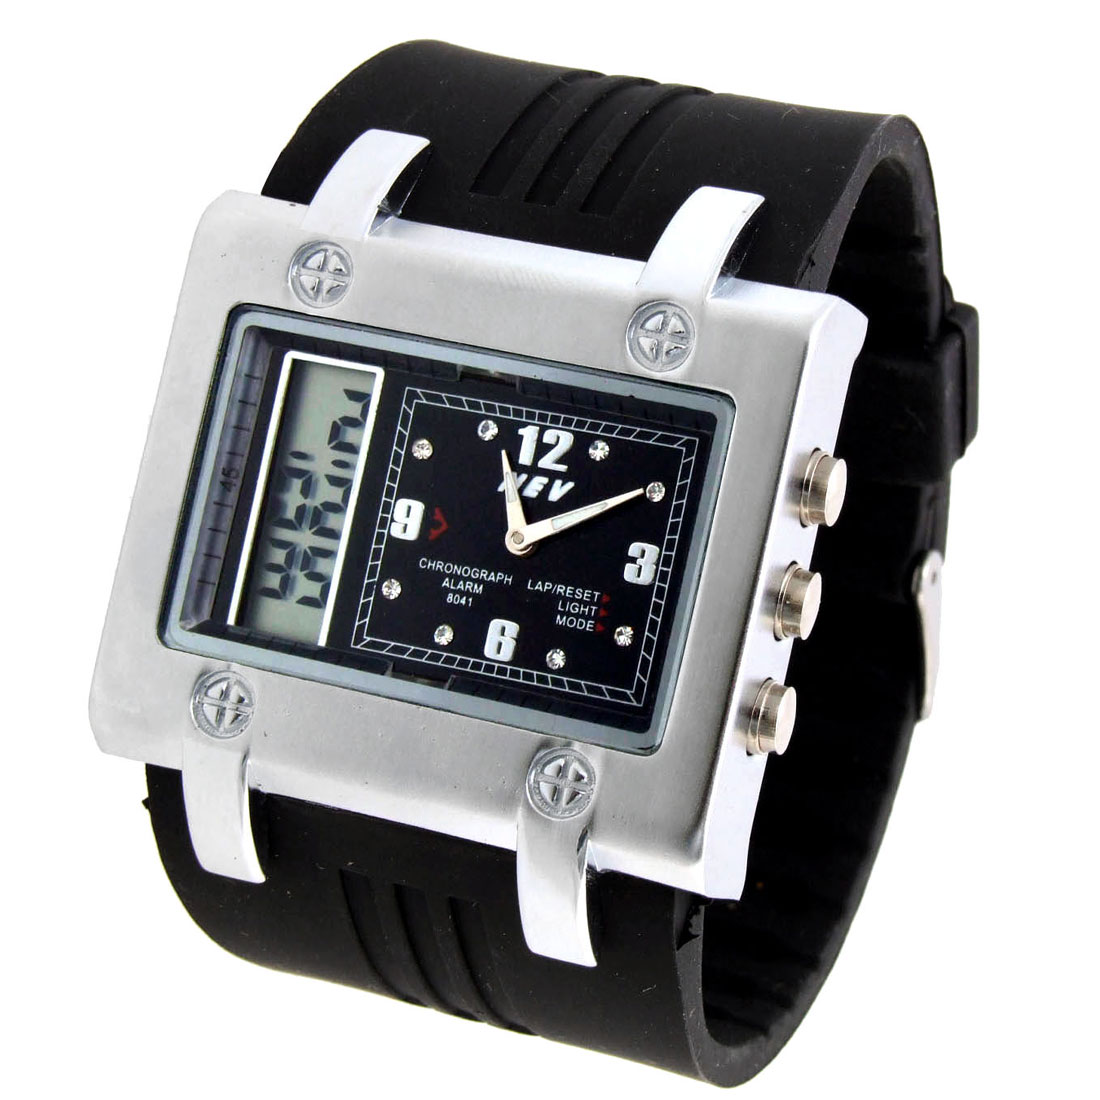 Fashion Black Band with Cube Case 2 in 1 Multifunction Sports Wristwatch